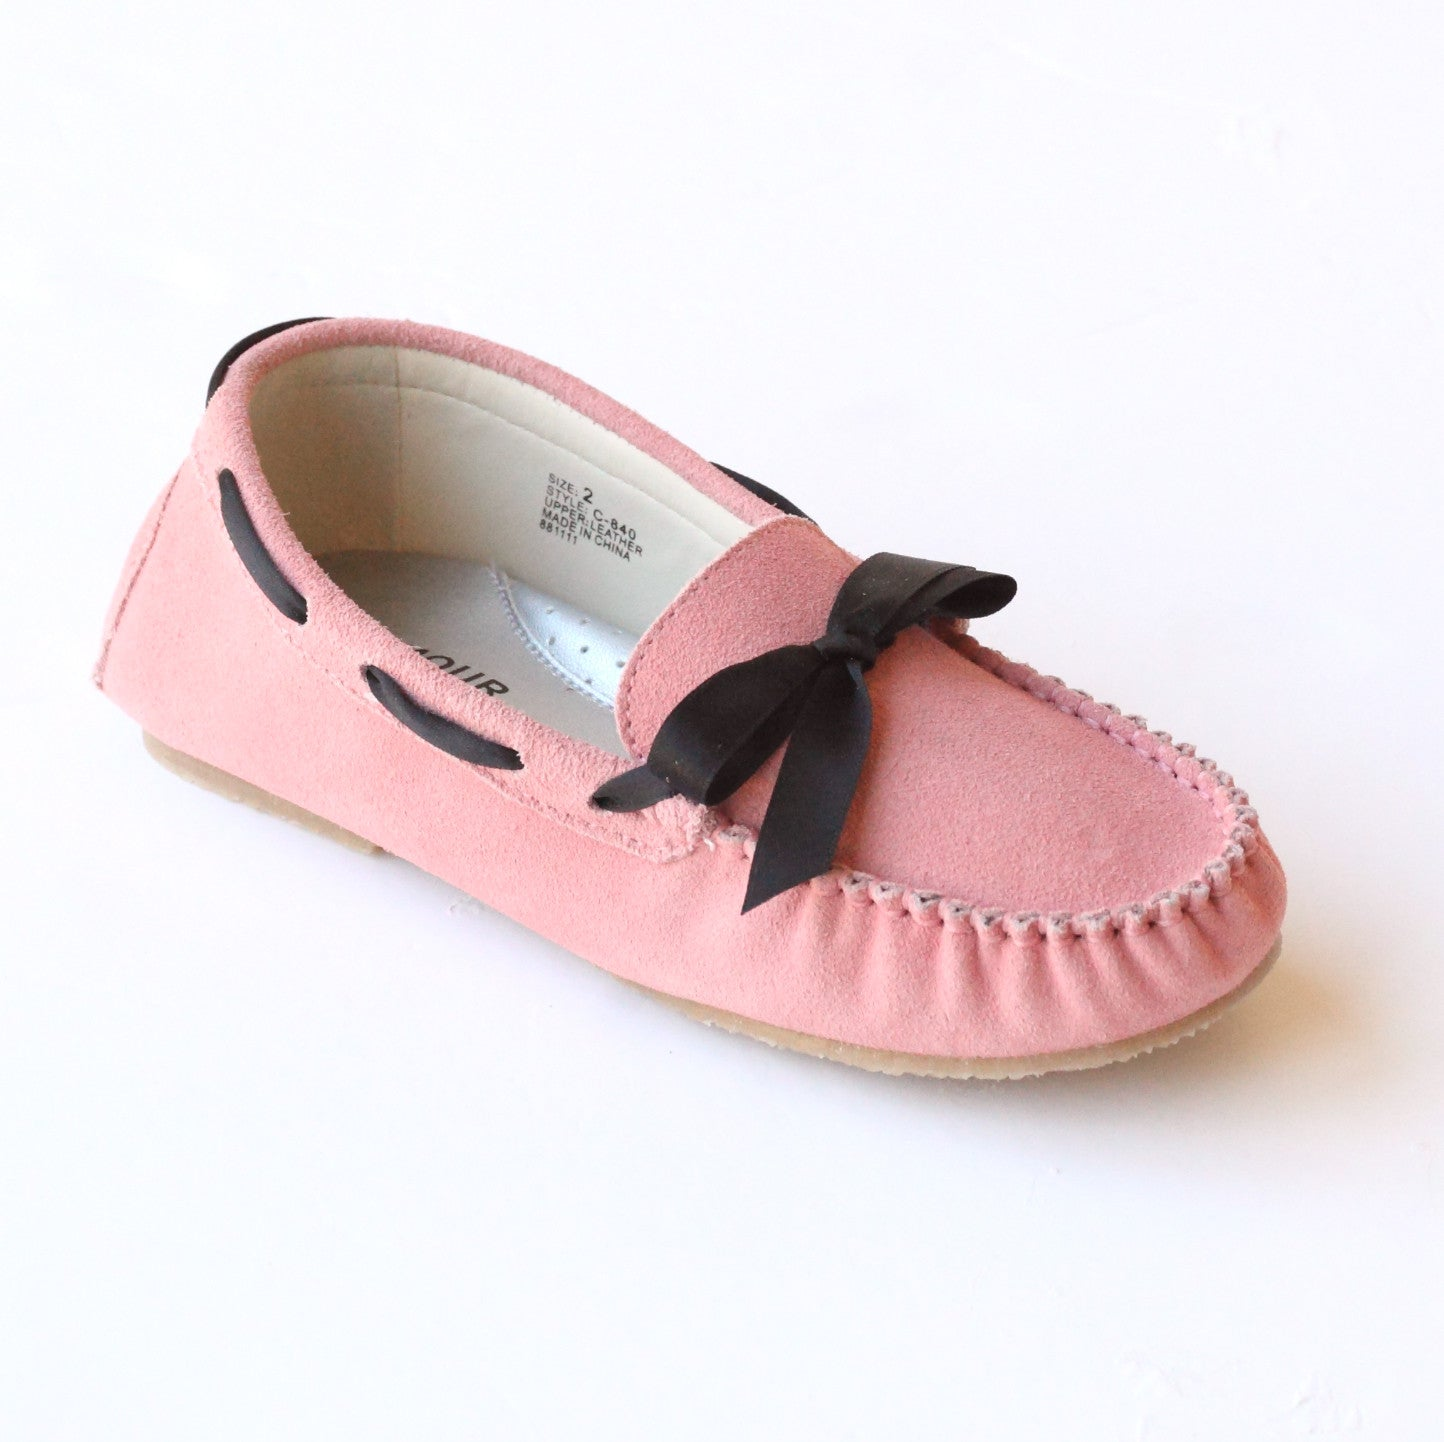 b7611380053 L Amour Shoes Girls C-840 Pink Leather Loafers with Bow – Babychelle